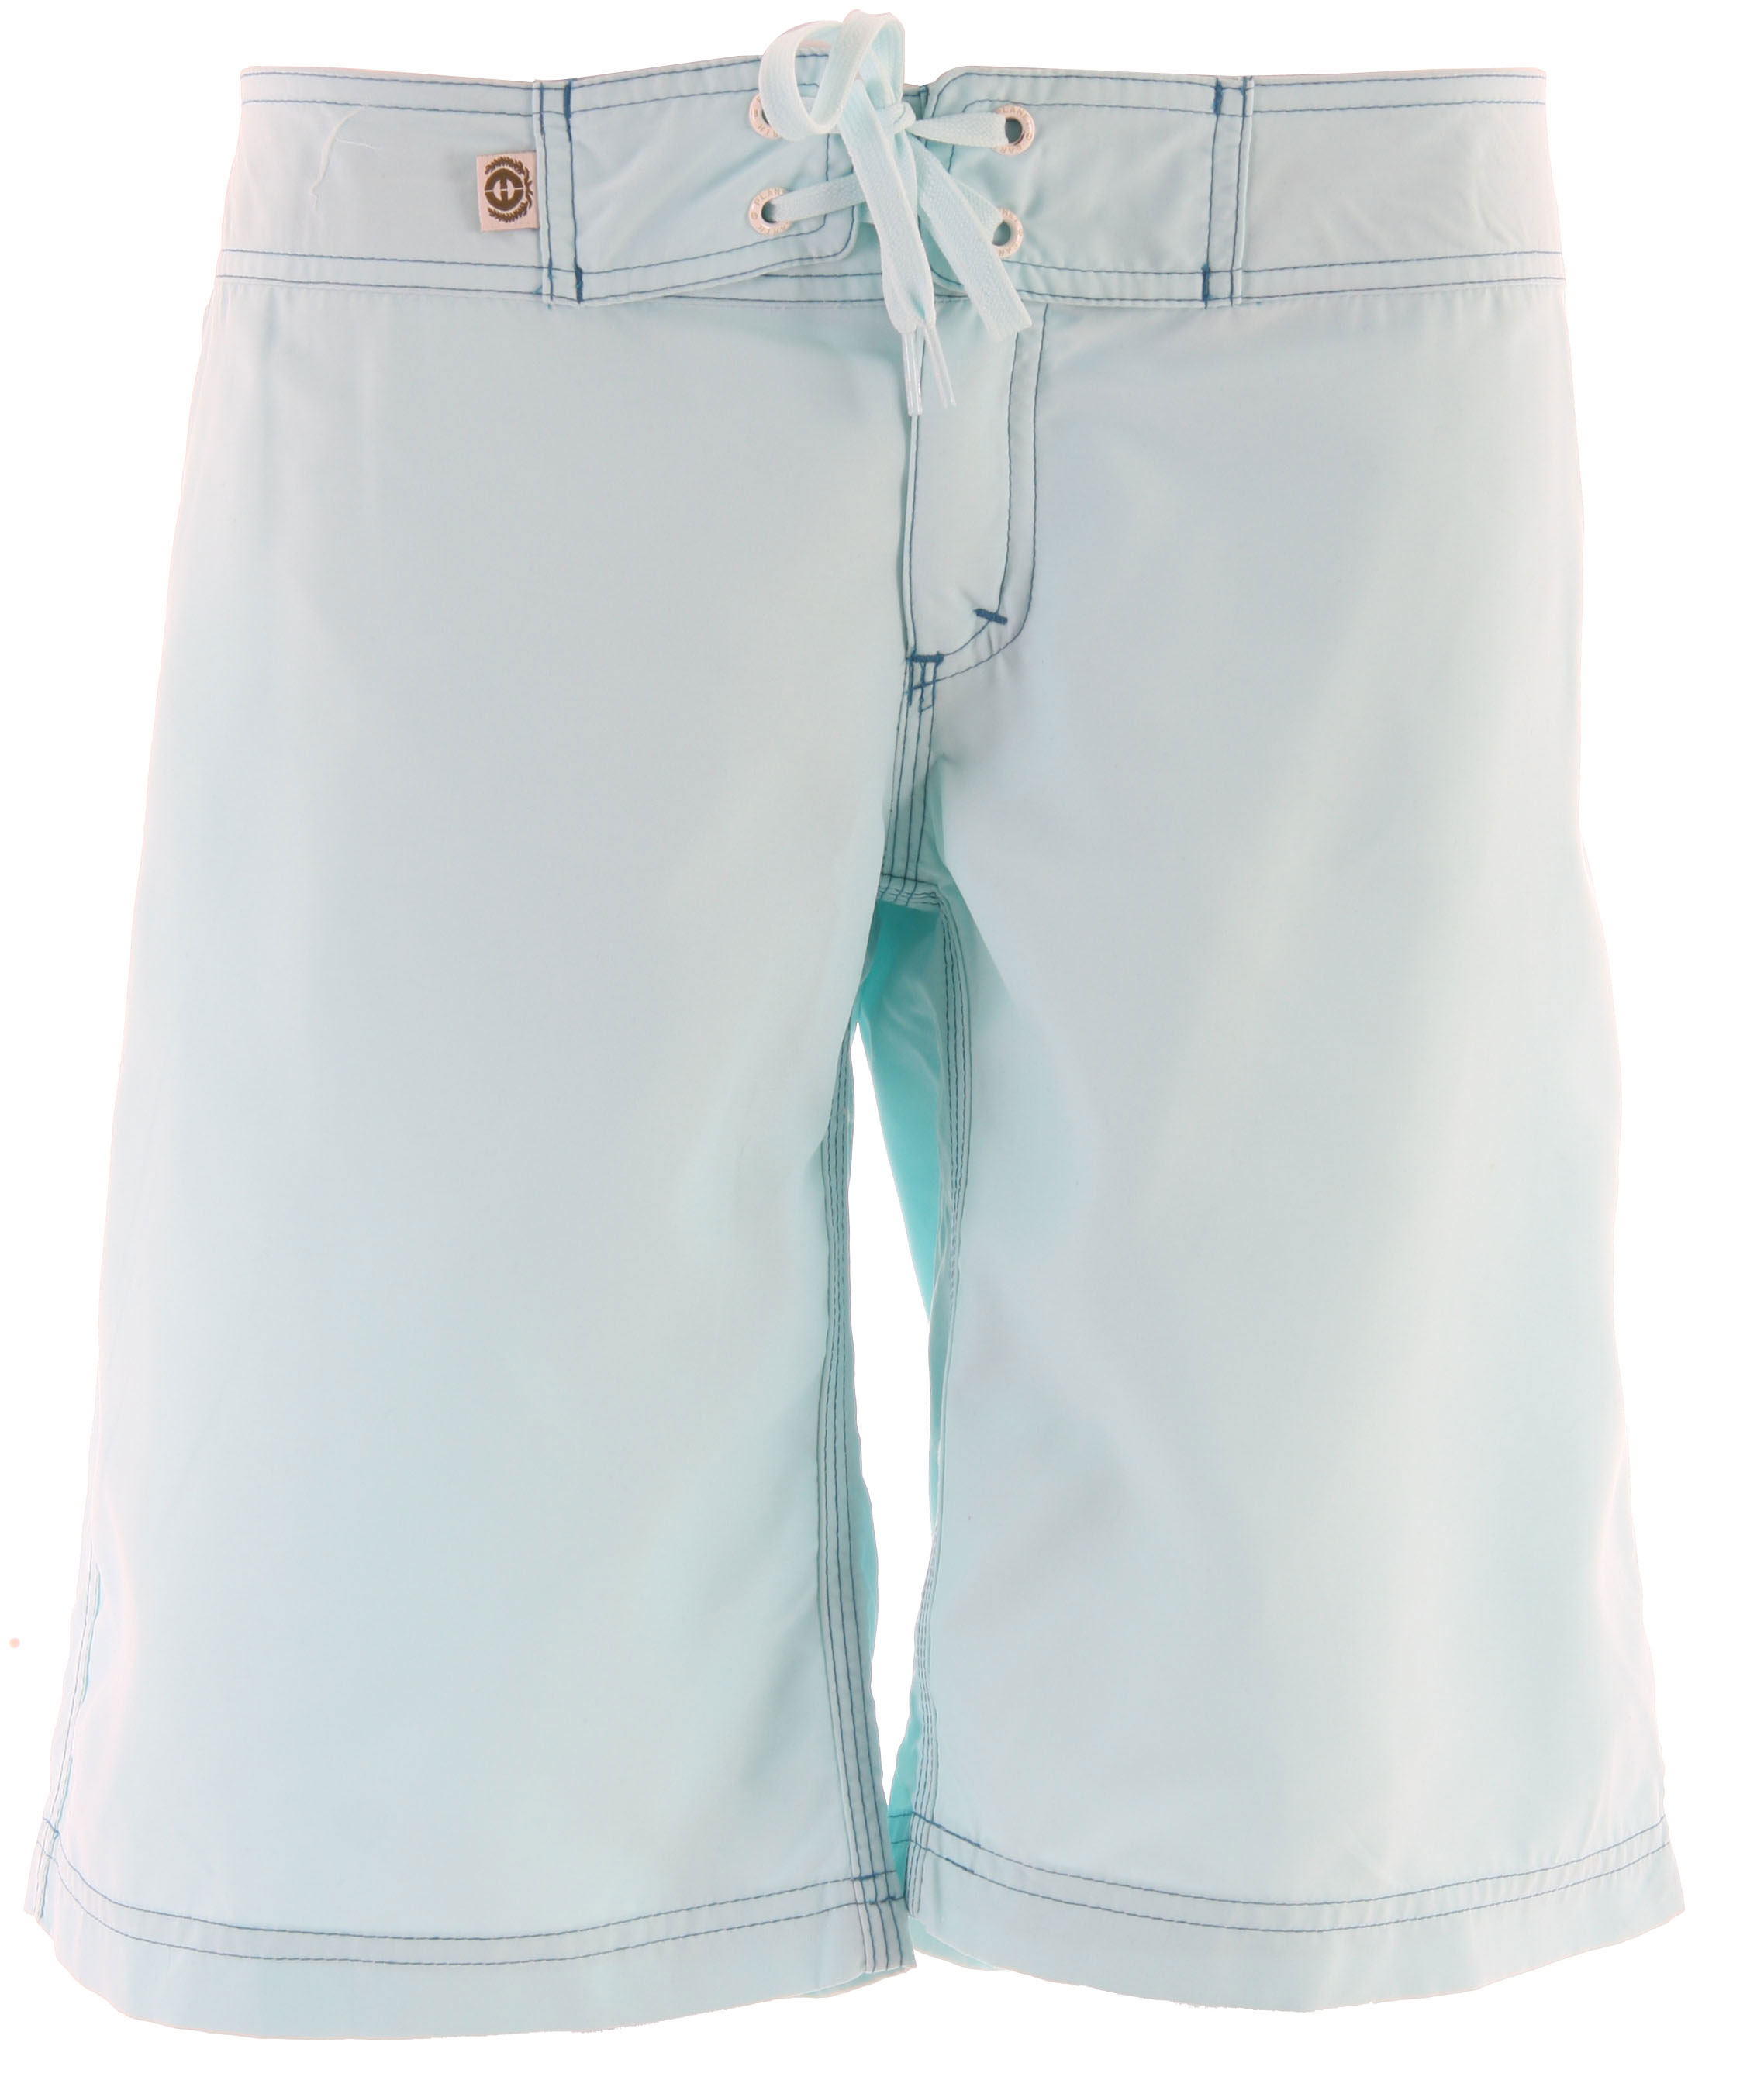 Surf Planet Earth Wilkinson Boardshorts Aqua - $23.85